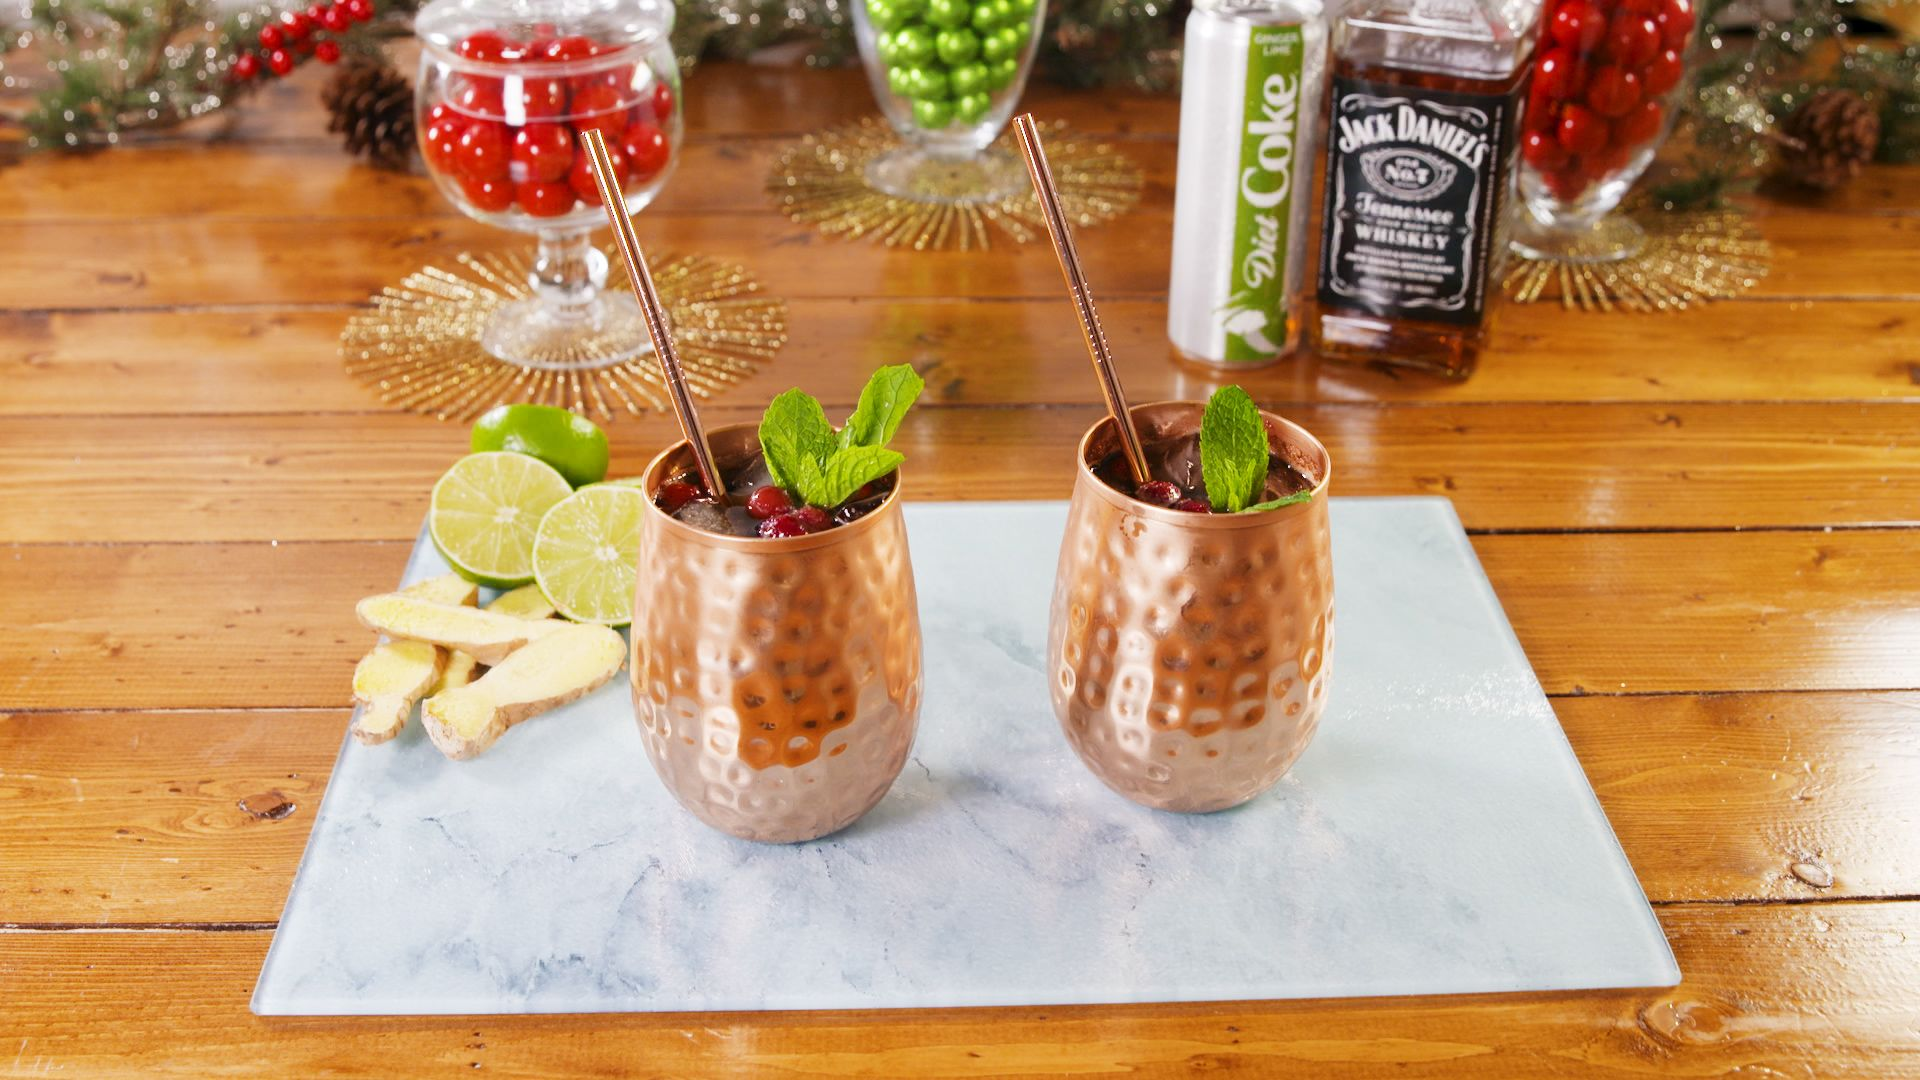 Yep, You're Going to Be Drinking Frozen Cranberry Ginger-Lime Mules *ALL* Winter Long